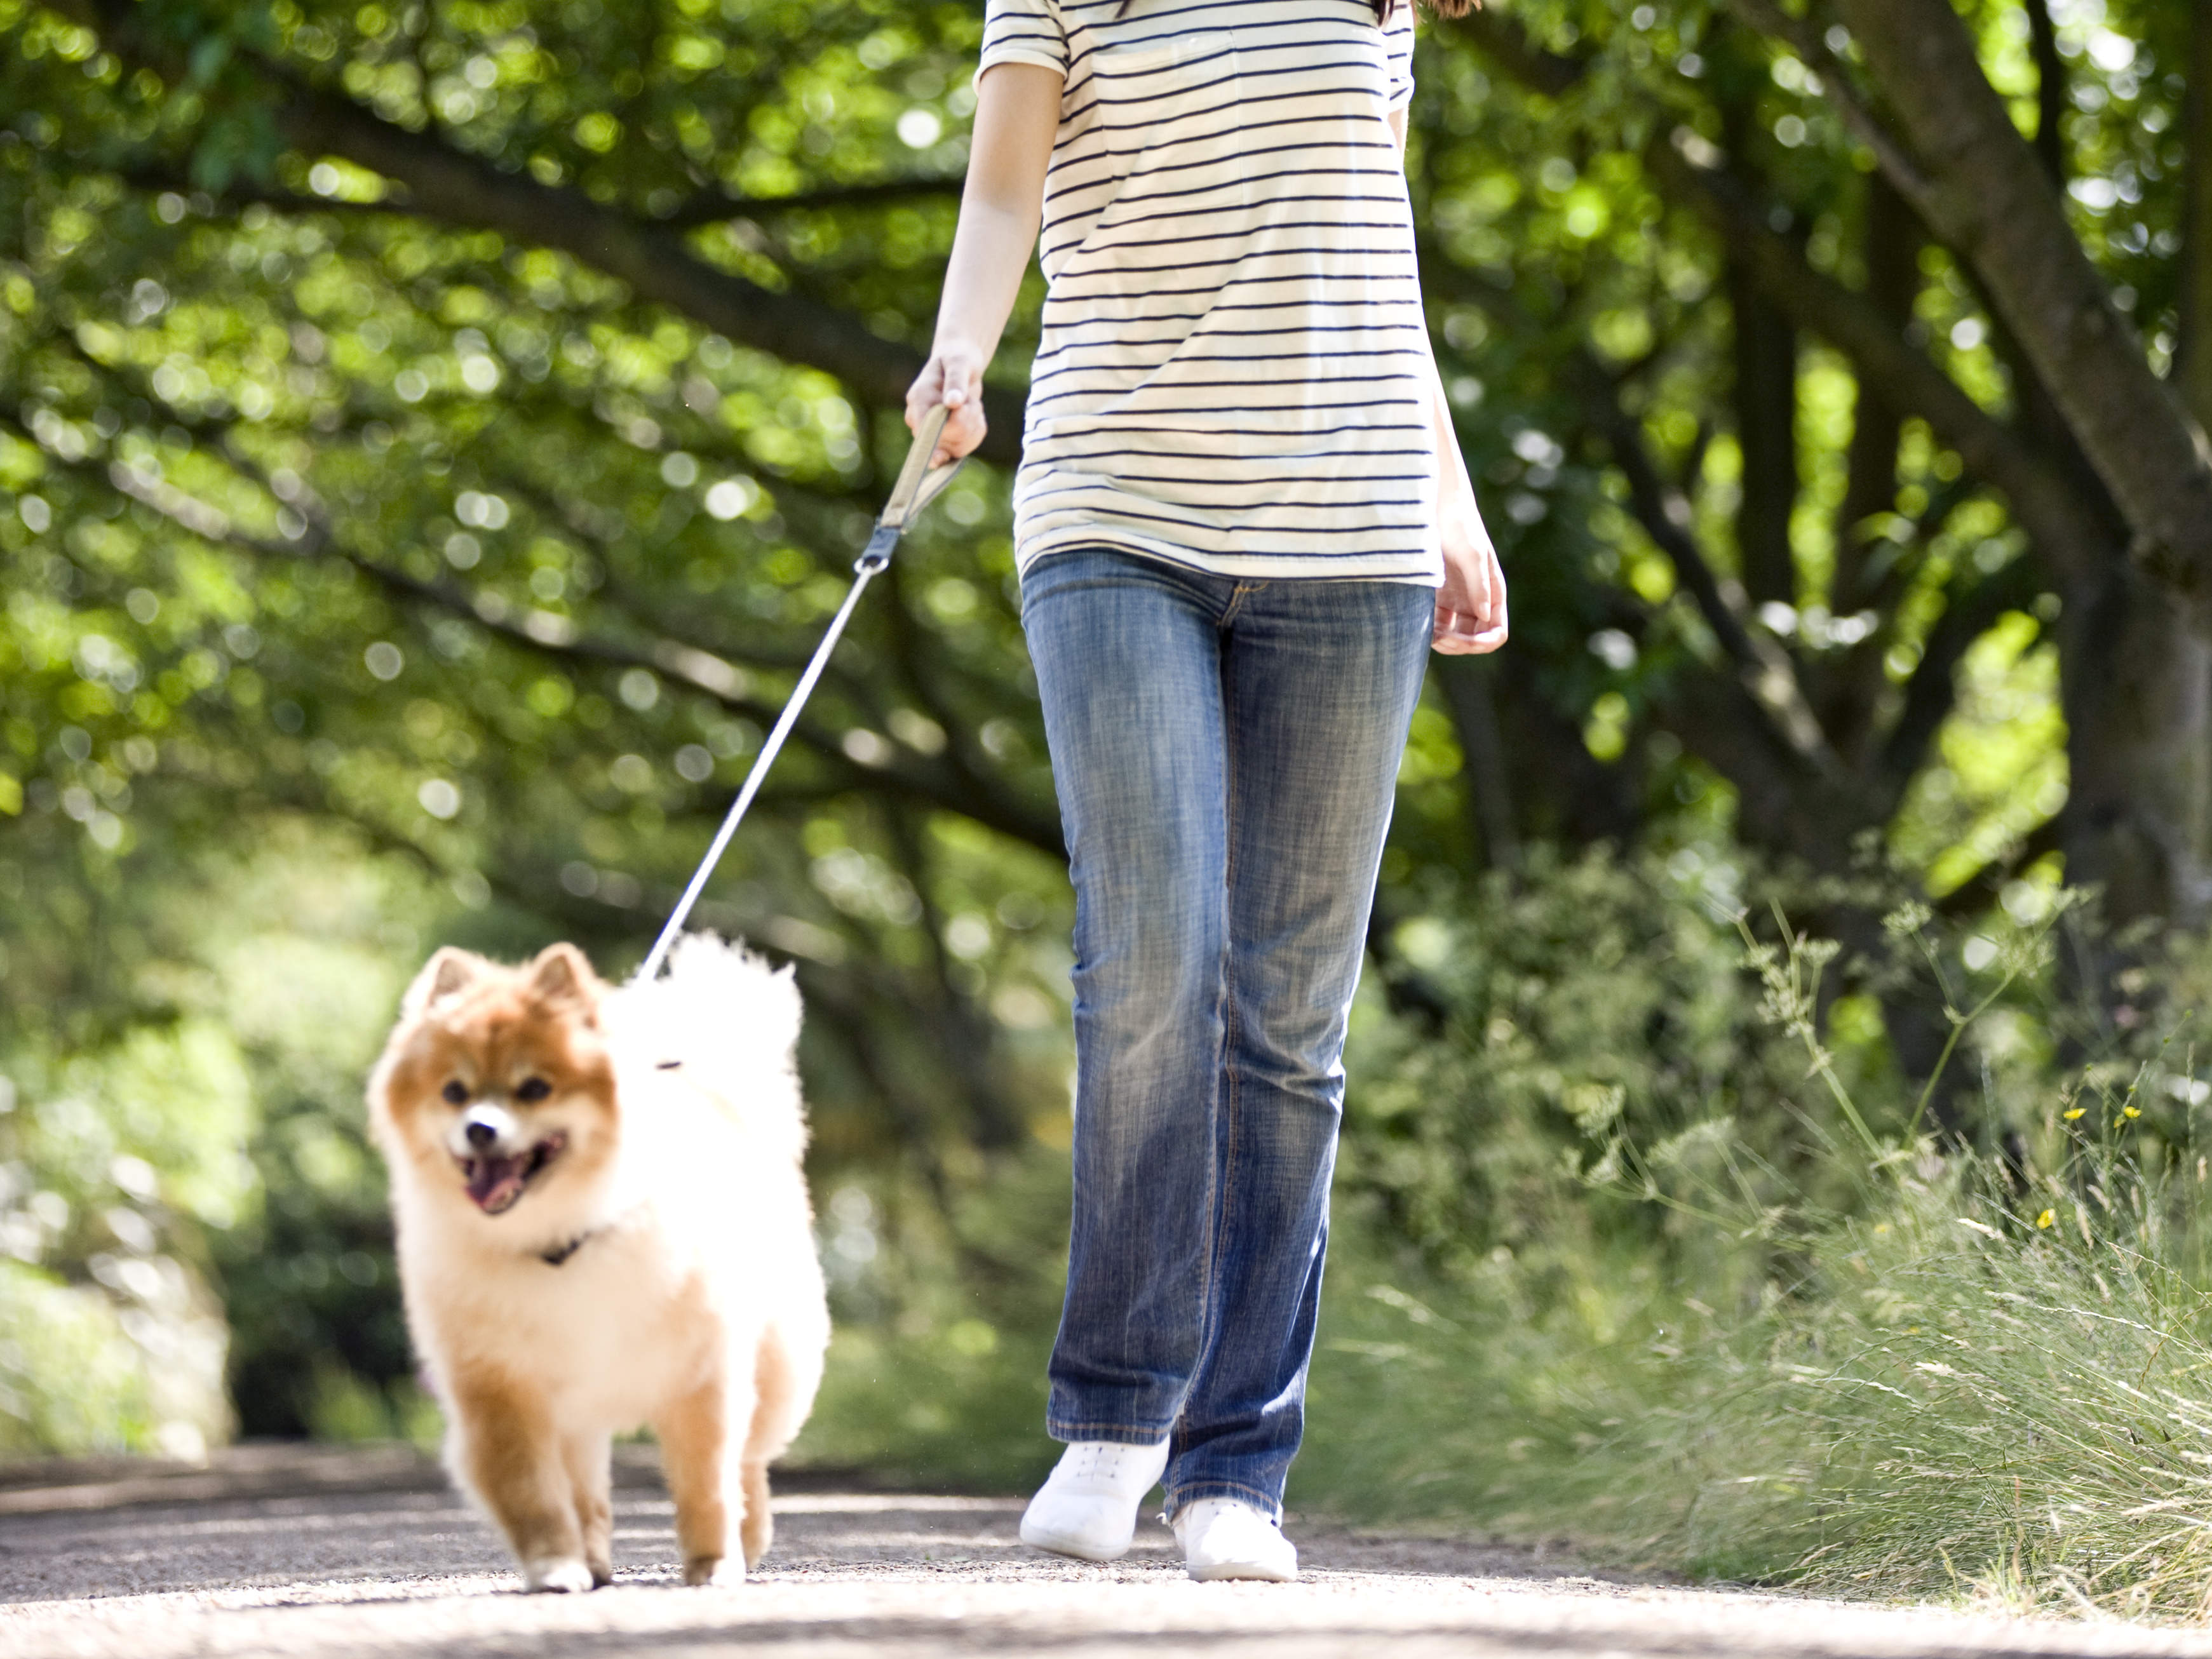 weight-loss-stripes-walking-dog